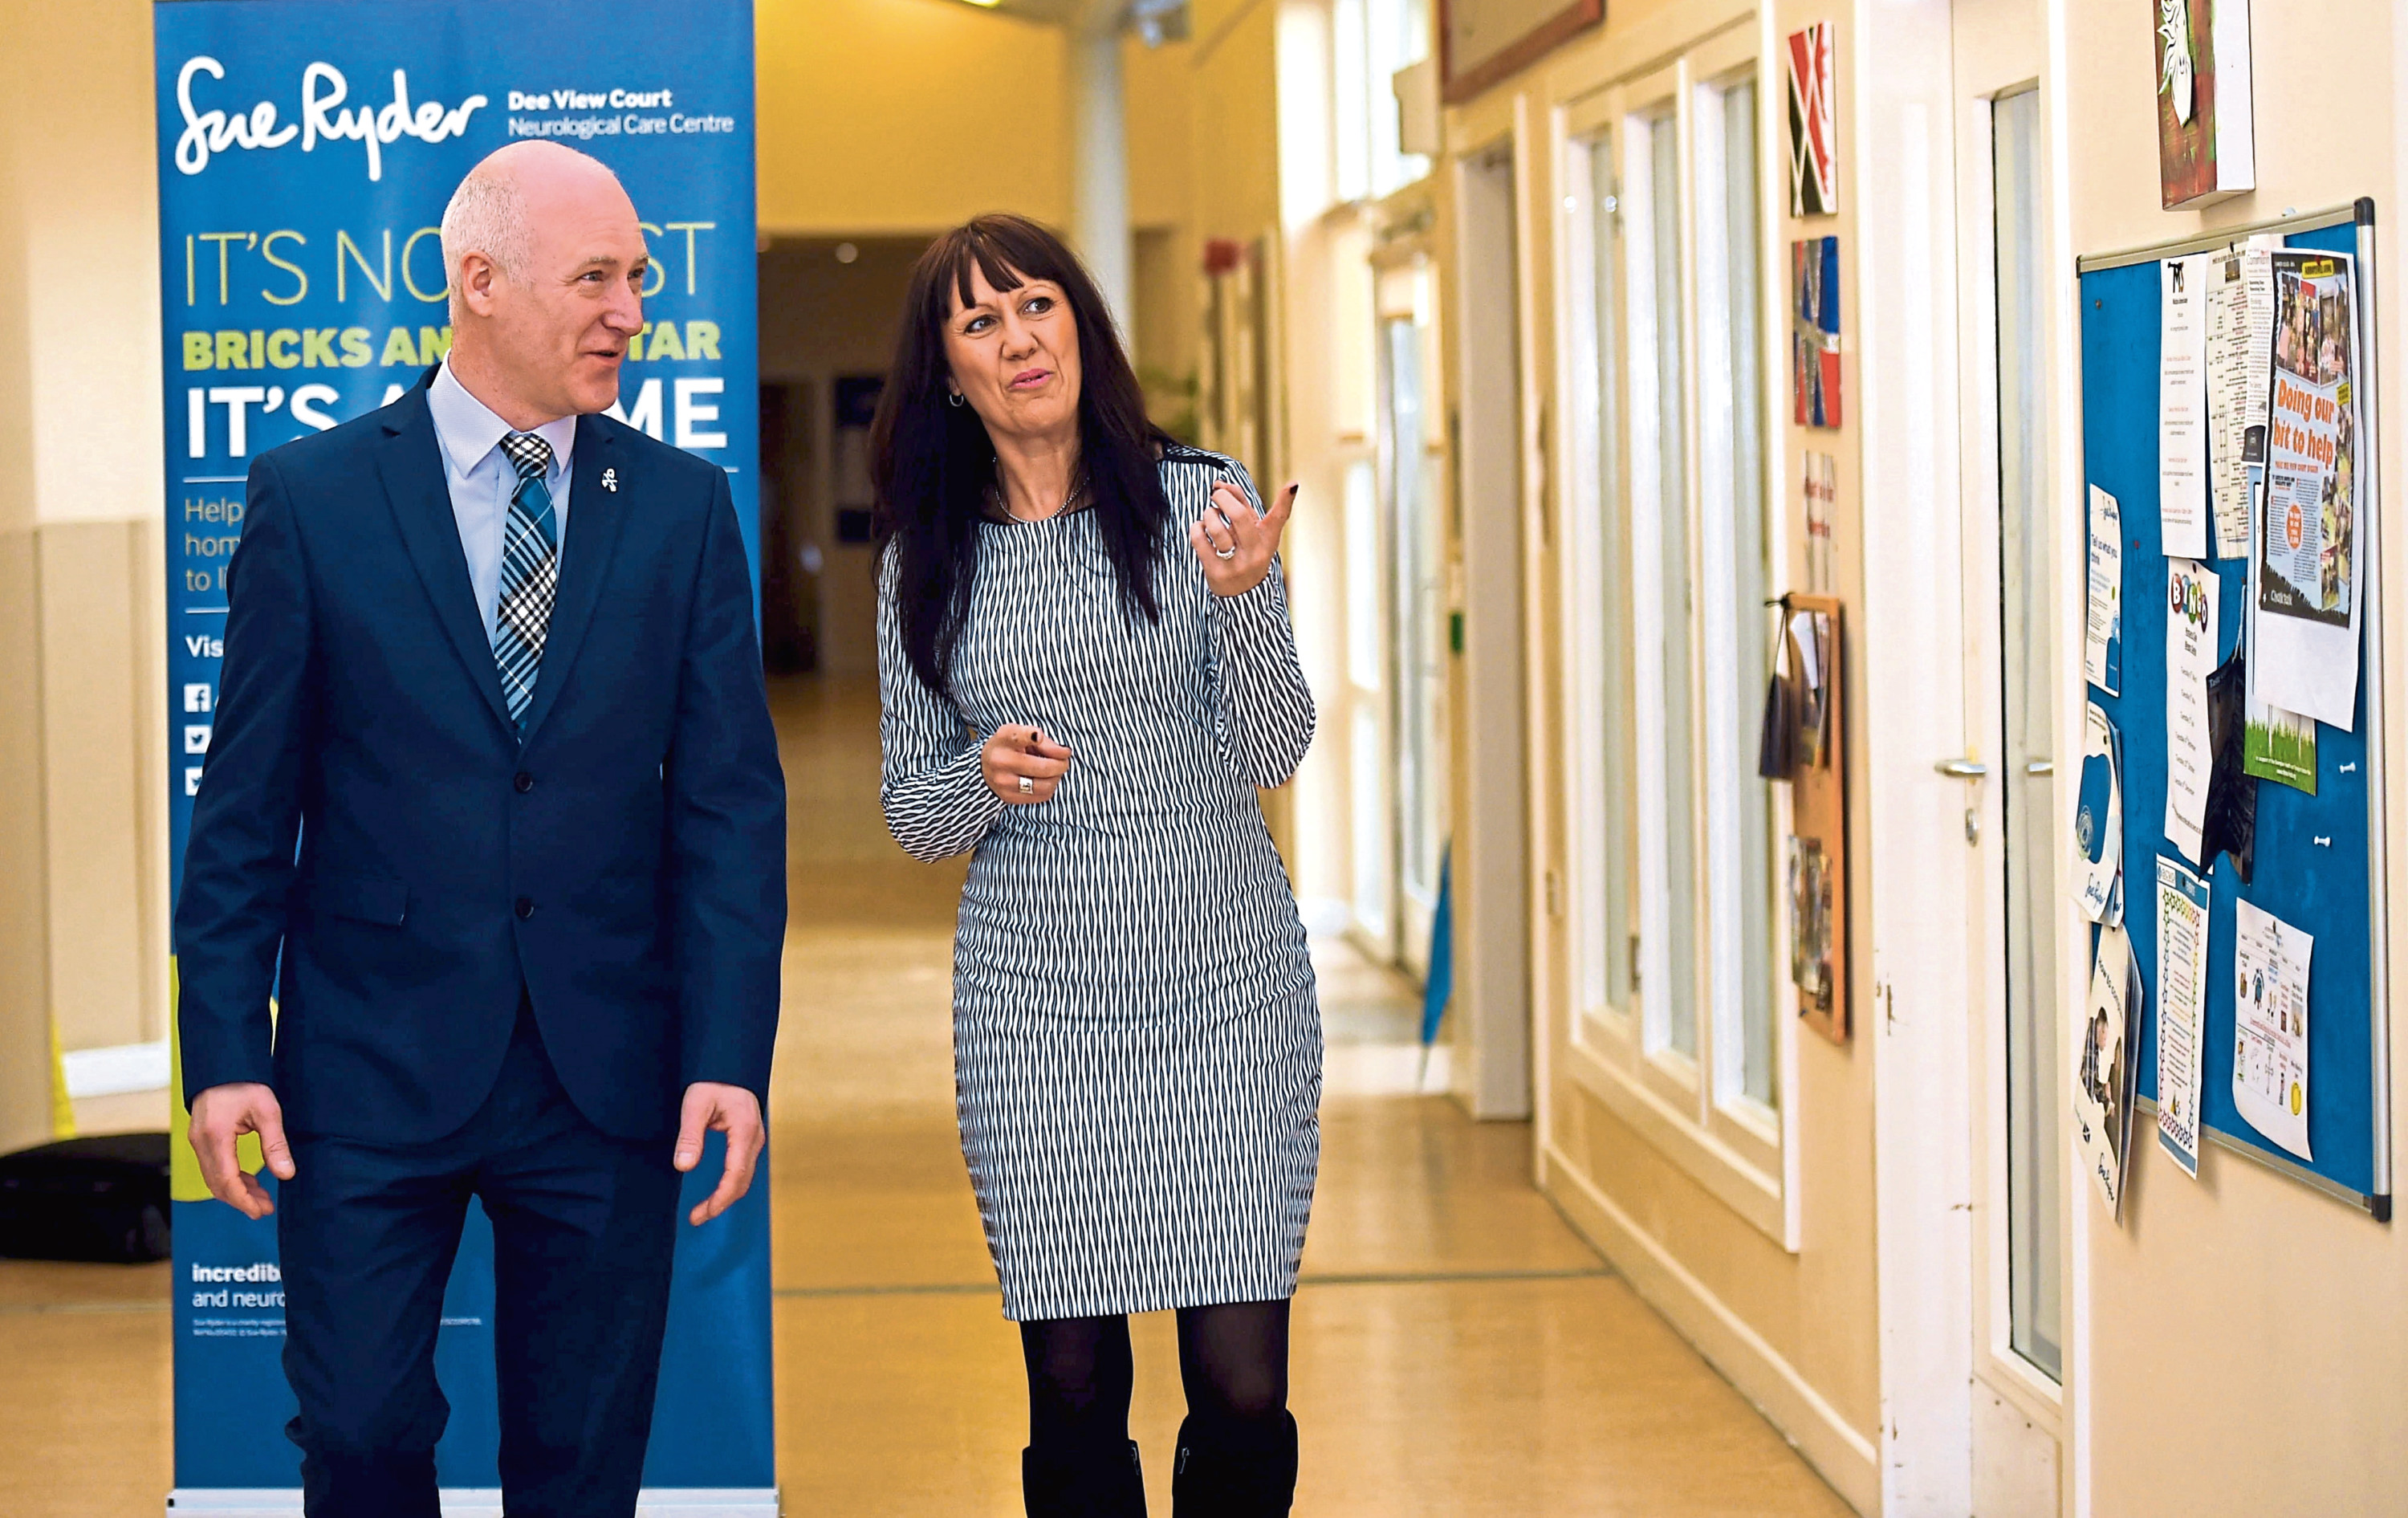 The Public Health minister during a visit to Dee View Court in Kincorth